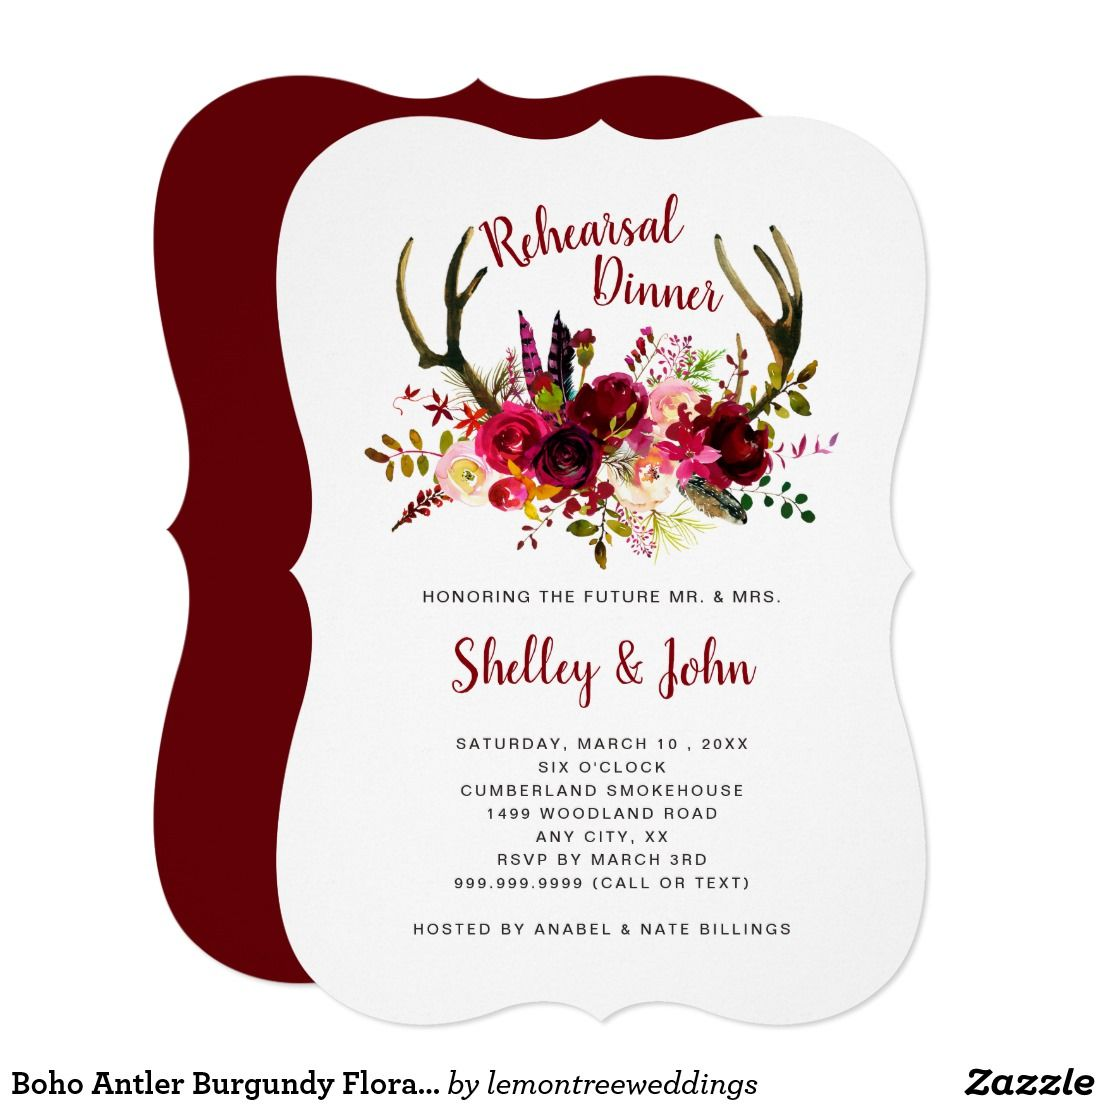 Boho Antler Burgundy Floral Rehearsal Dinner Invitation | Pinterest ...